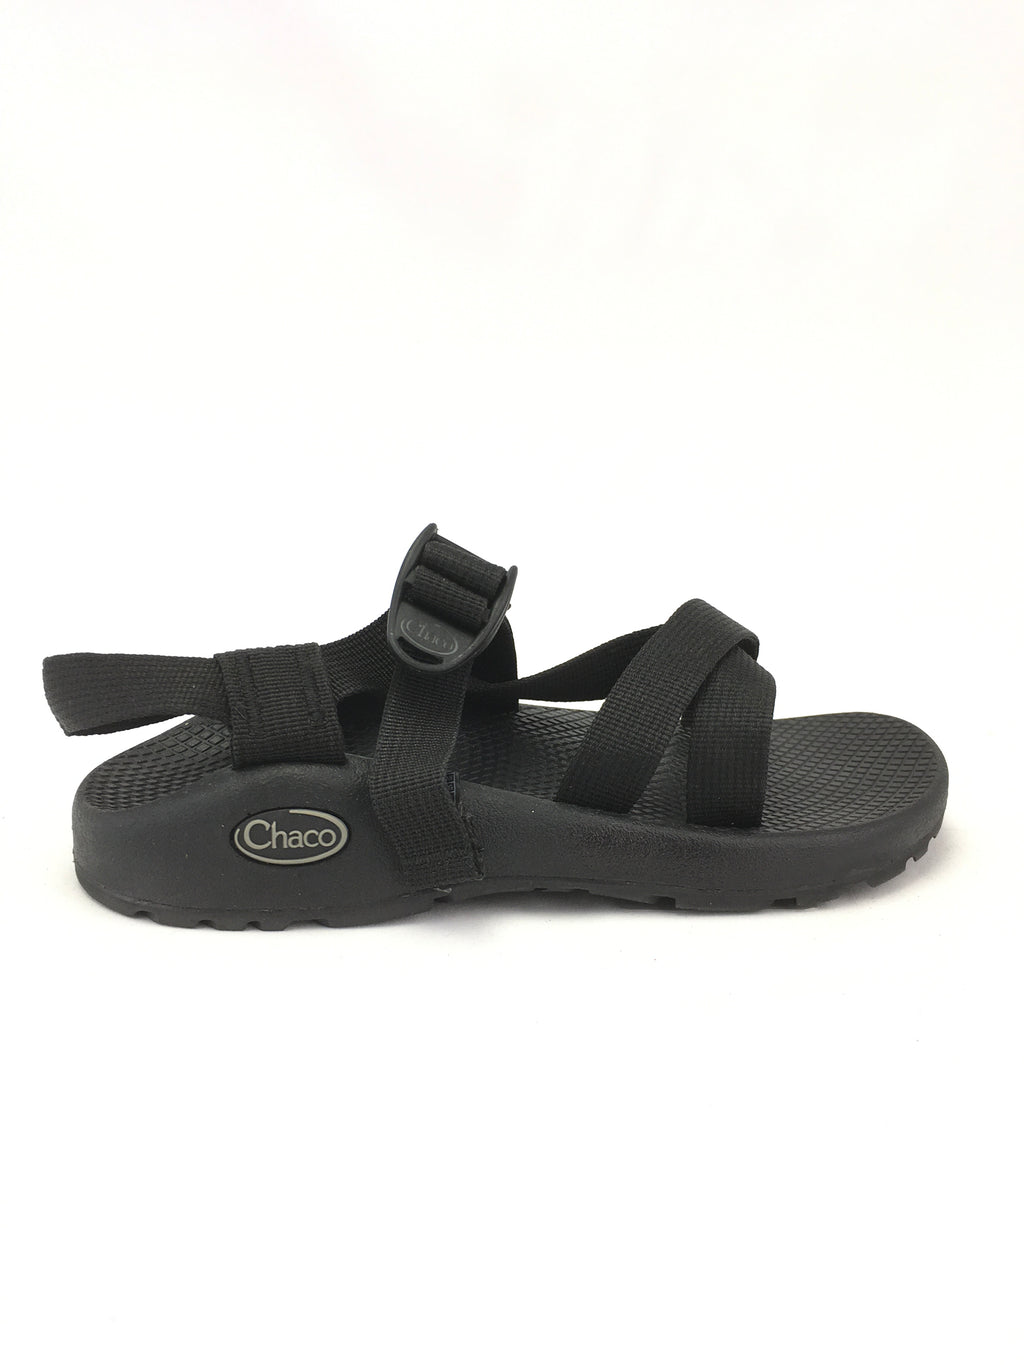 Chacos Sandals Size 6